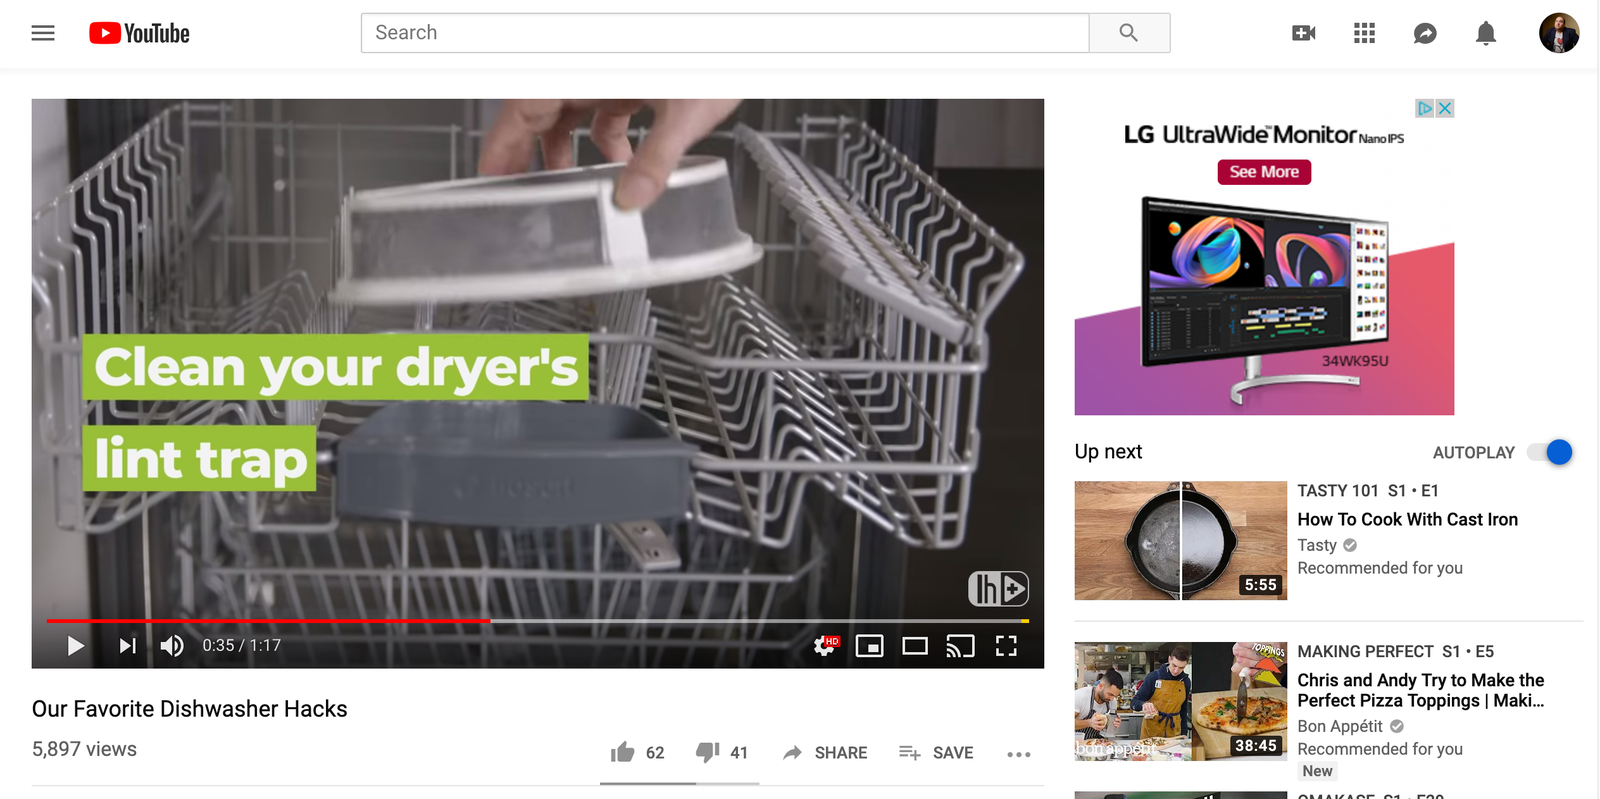 This what a YouTube video page looks like normally.